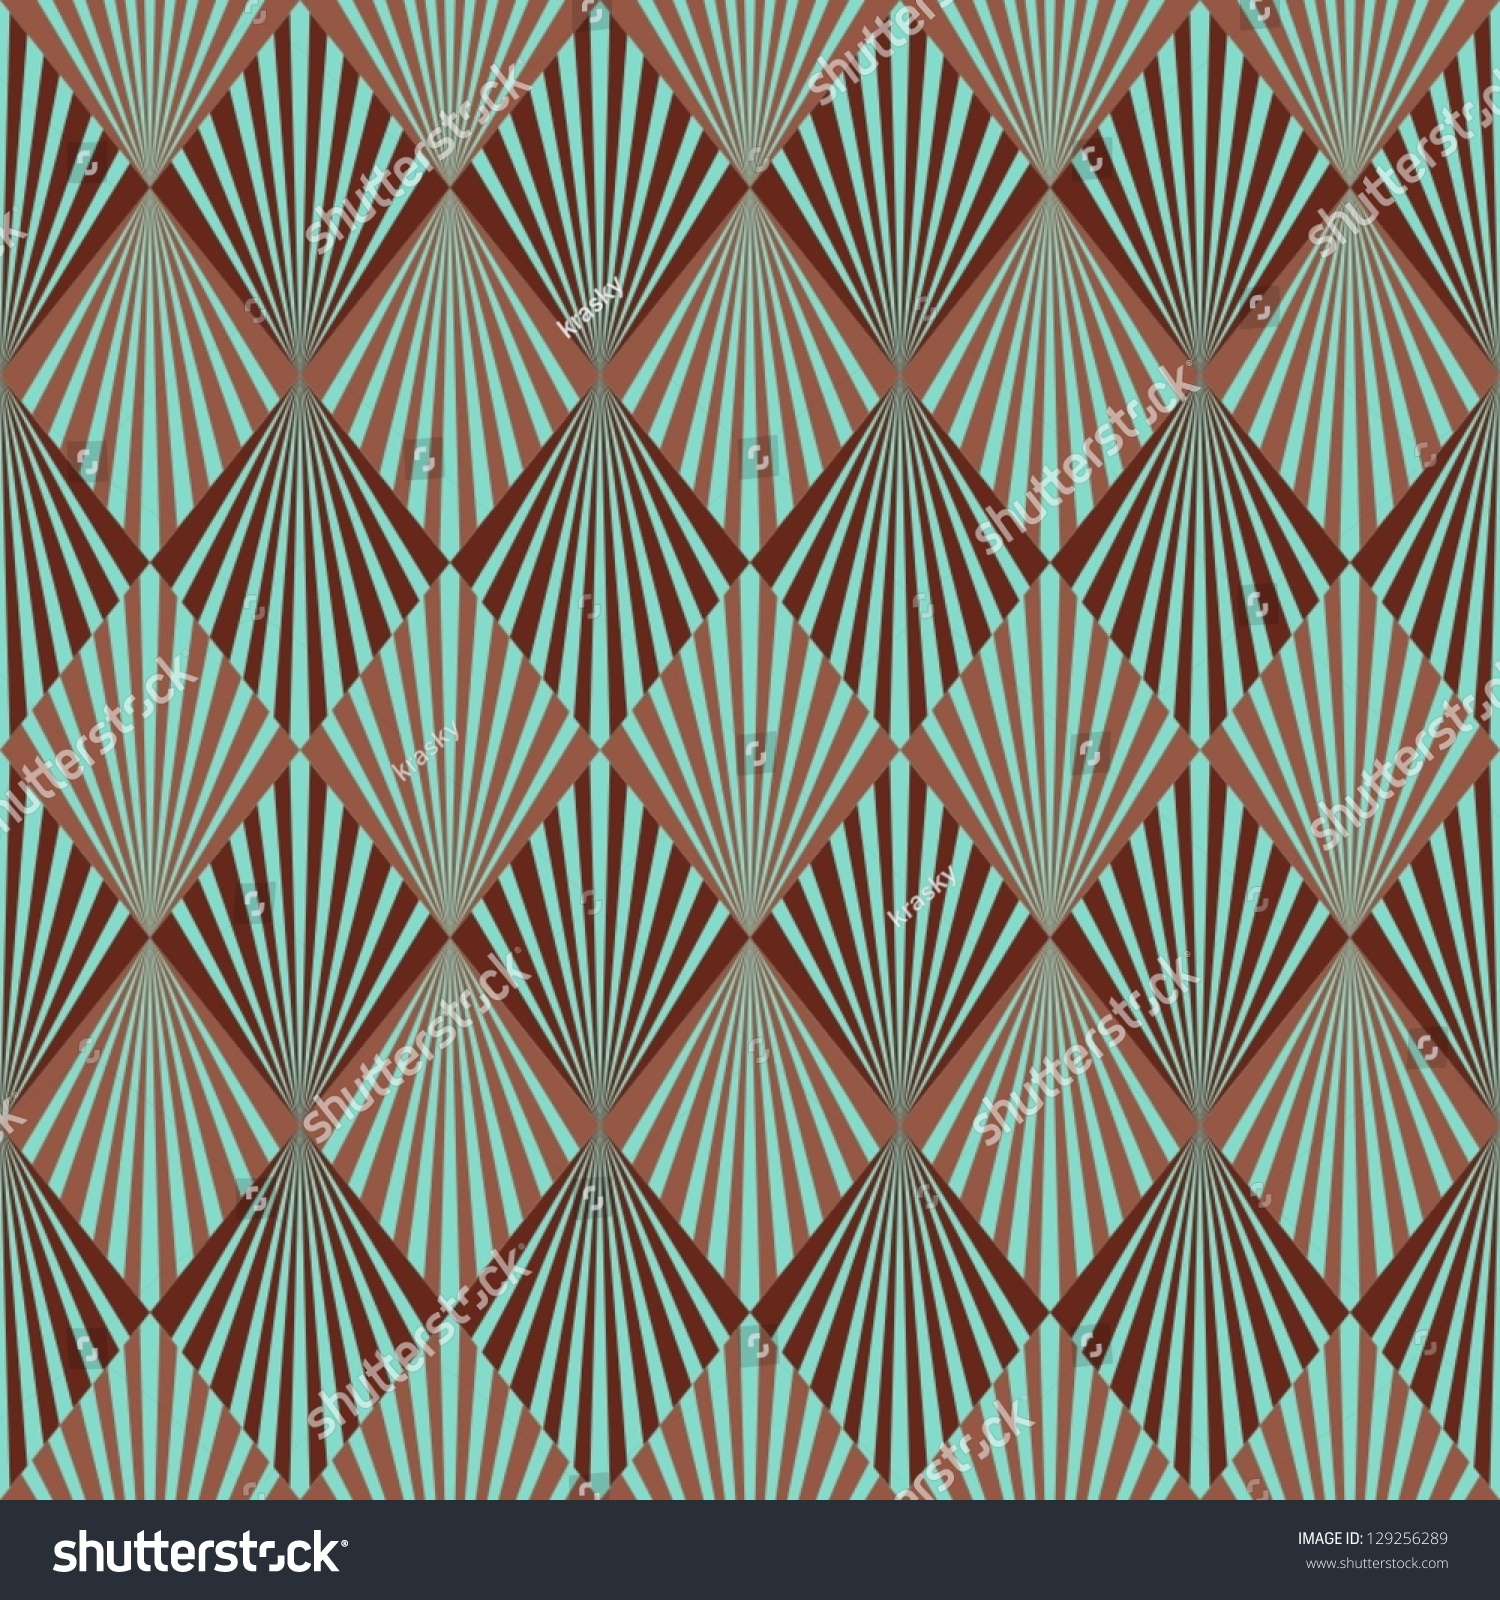 art deco style seamless pattern texture image vectorielle 129256289 shutterstock. Black Bedroom Furniture Sets. Home Design Ideas